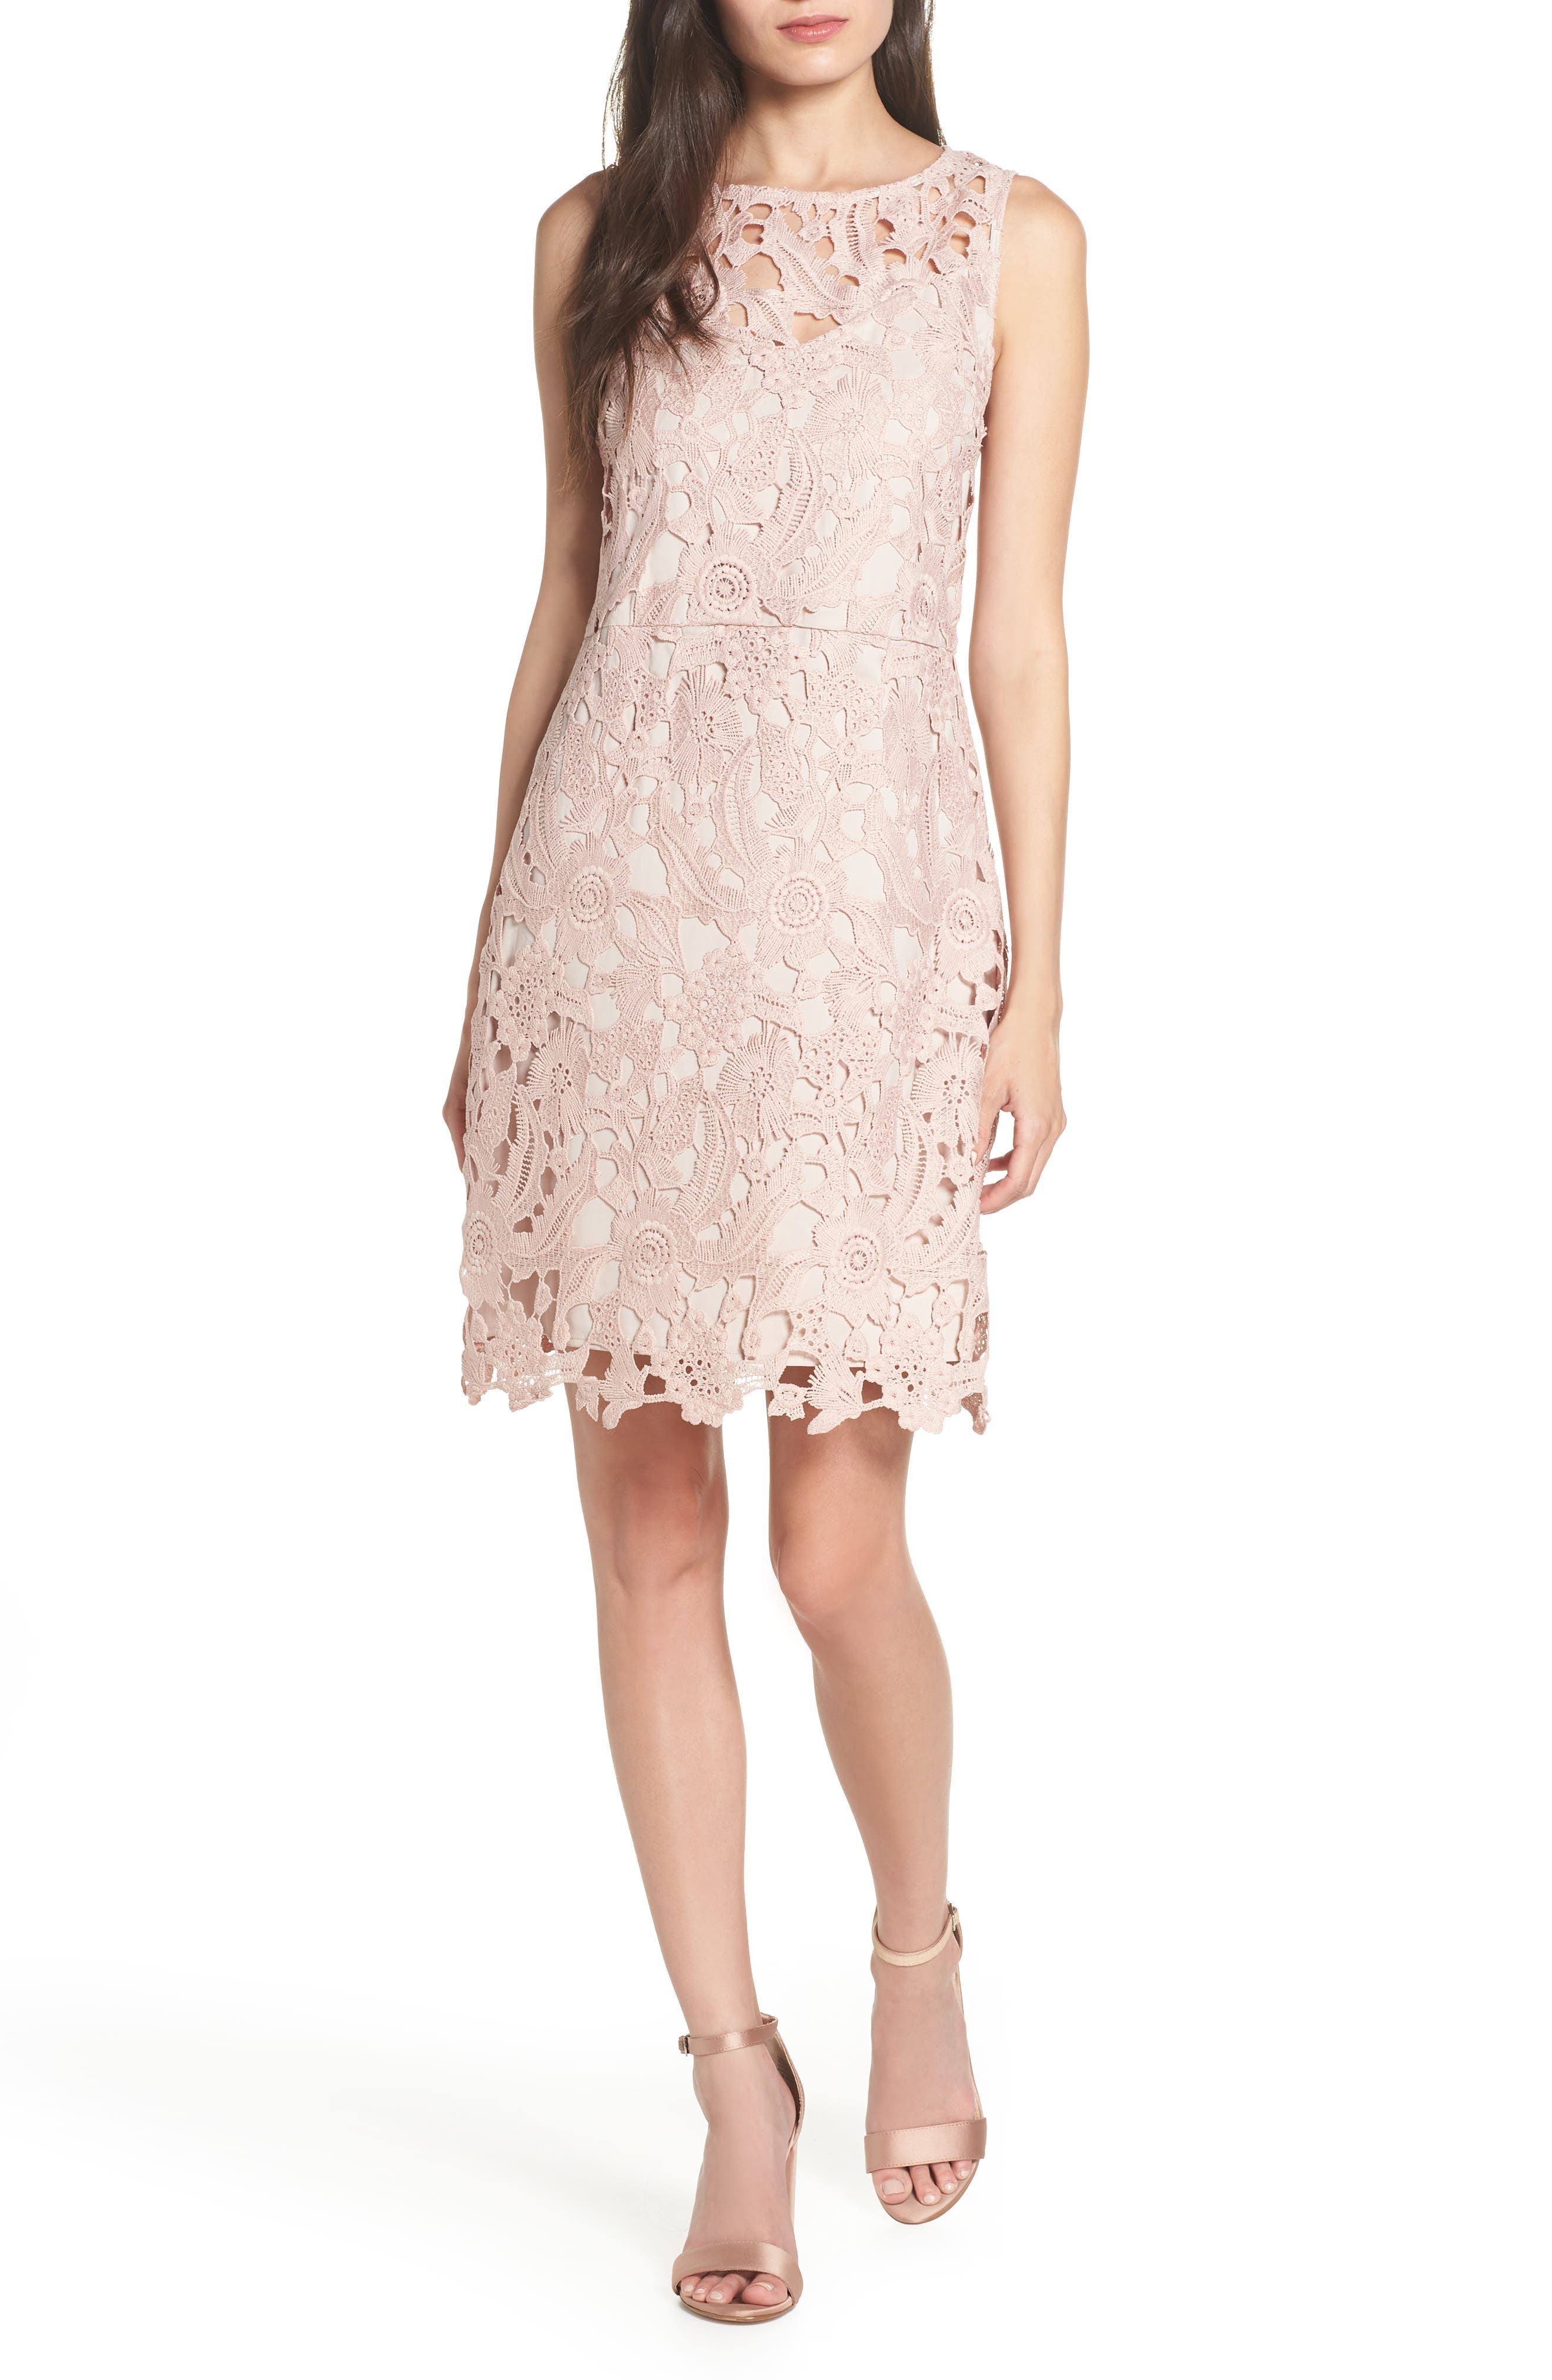 SAM EDELMAN, Lace Sheath Dress, Main thumbnail 1, color, BLUSH